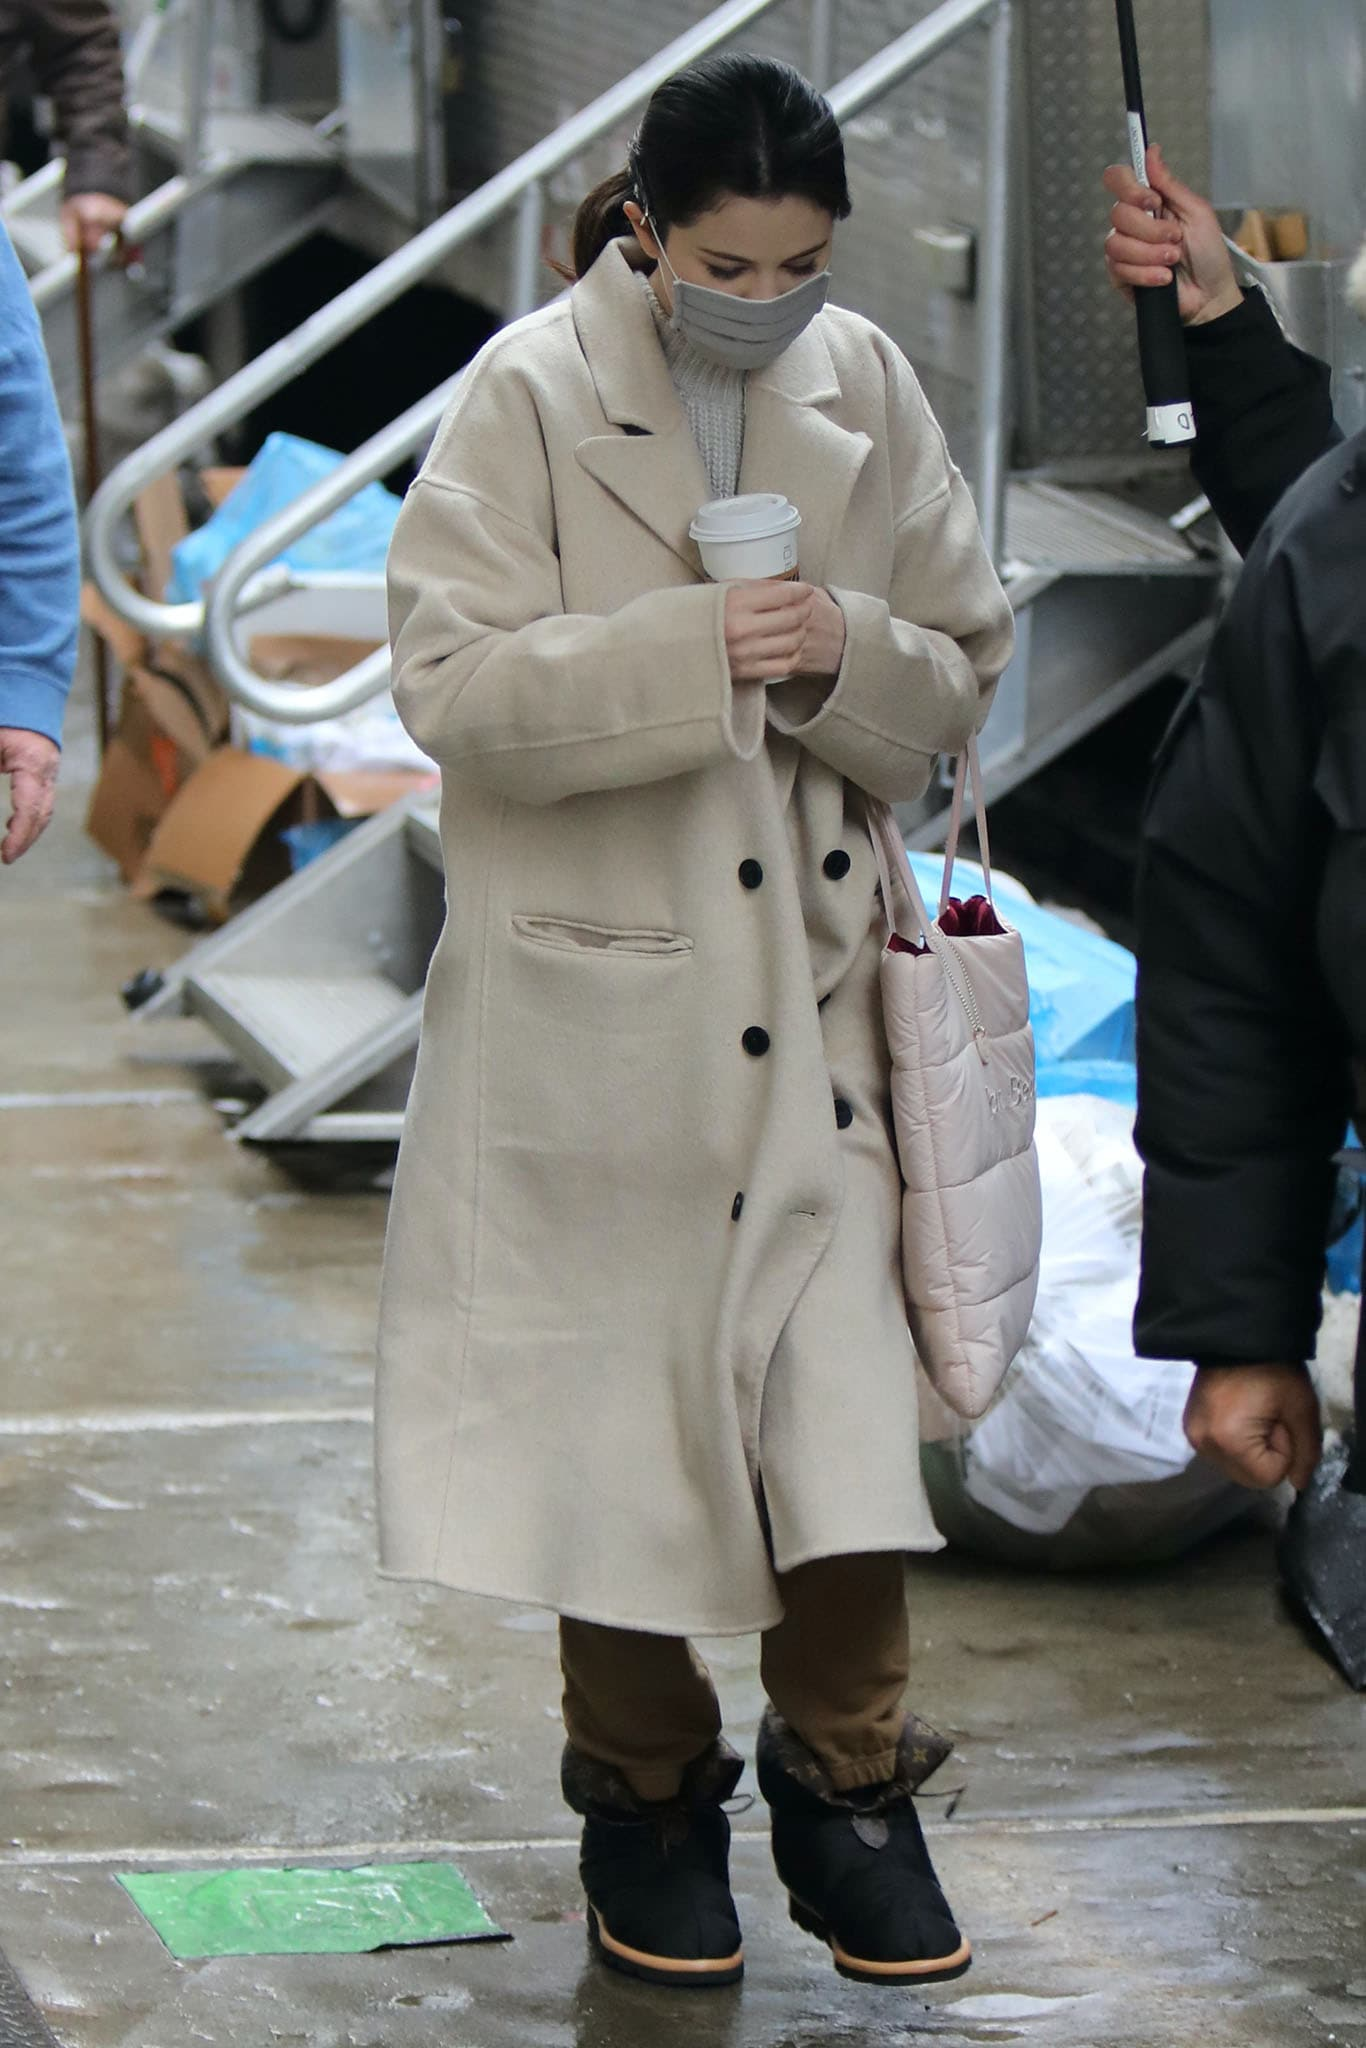 Selena Gomez on the set of her upcoming Hulu comedy series, Only Murders in the Building, on February 9, 2021